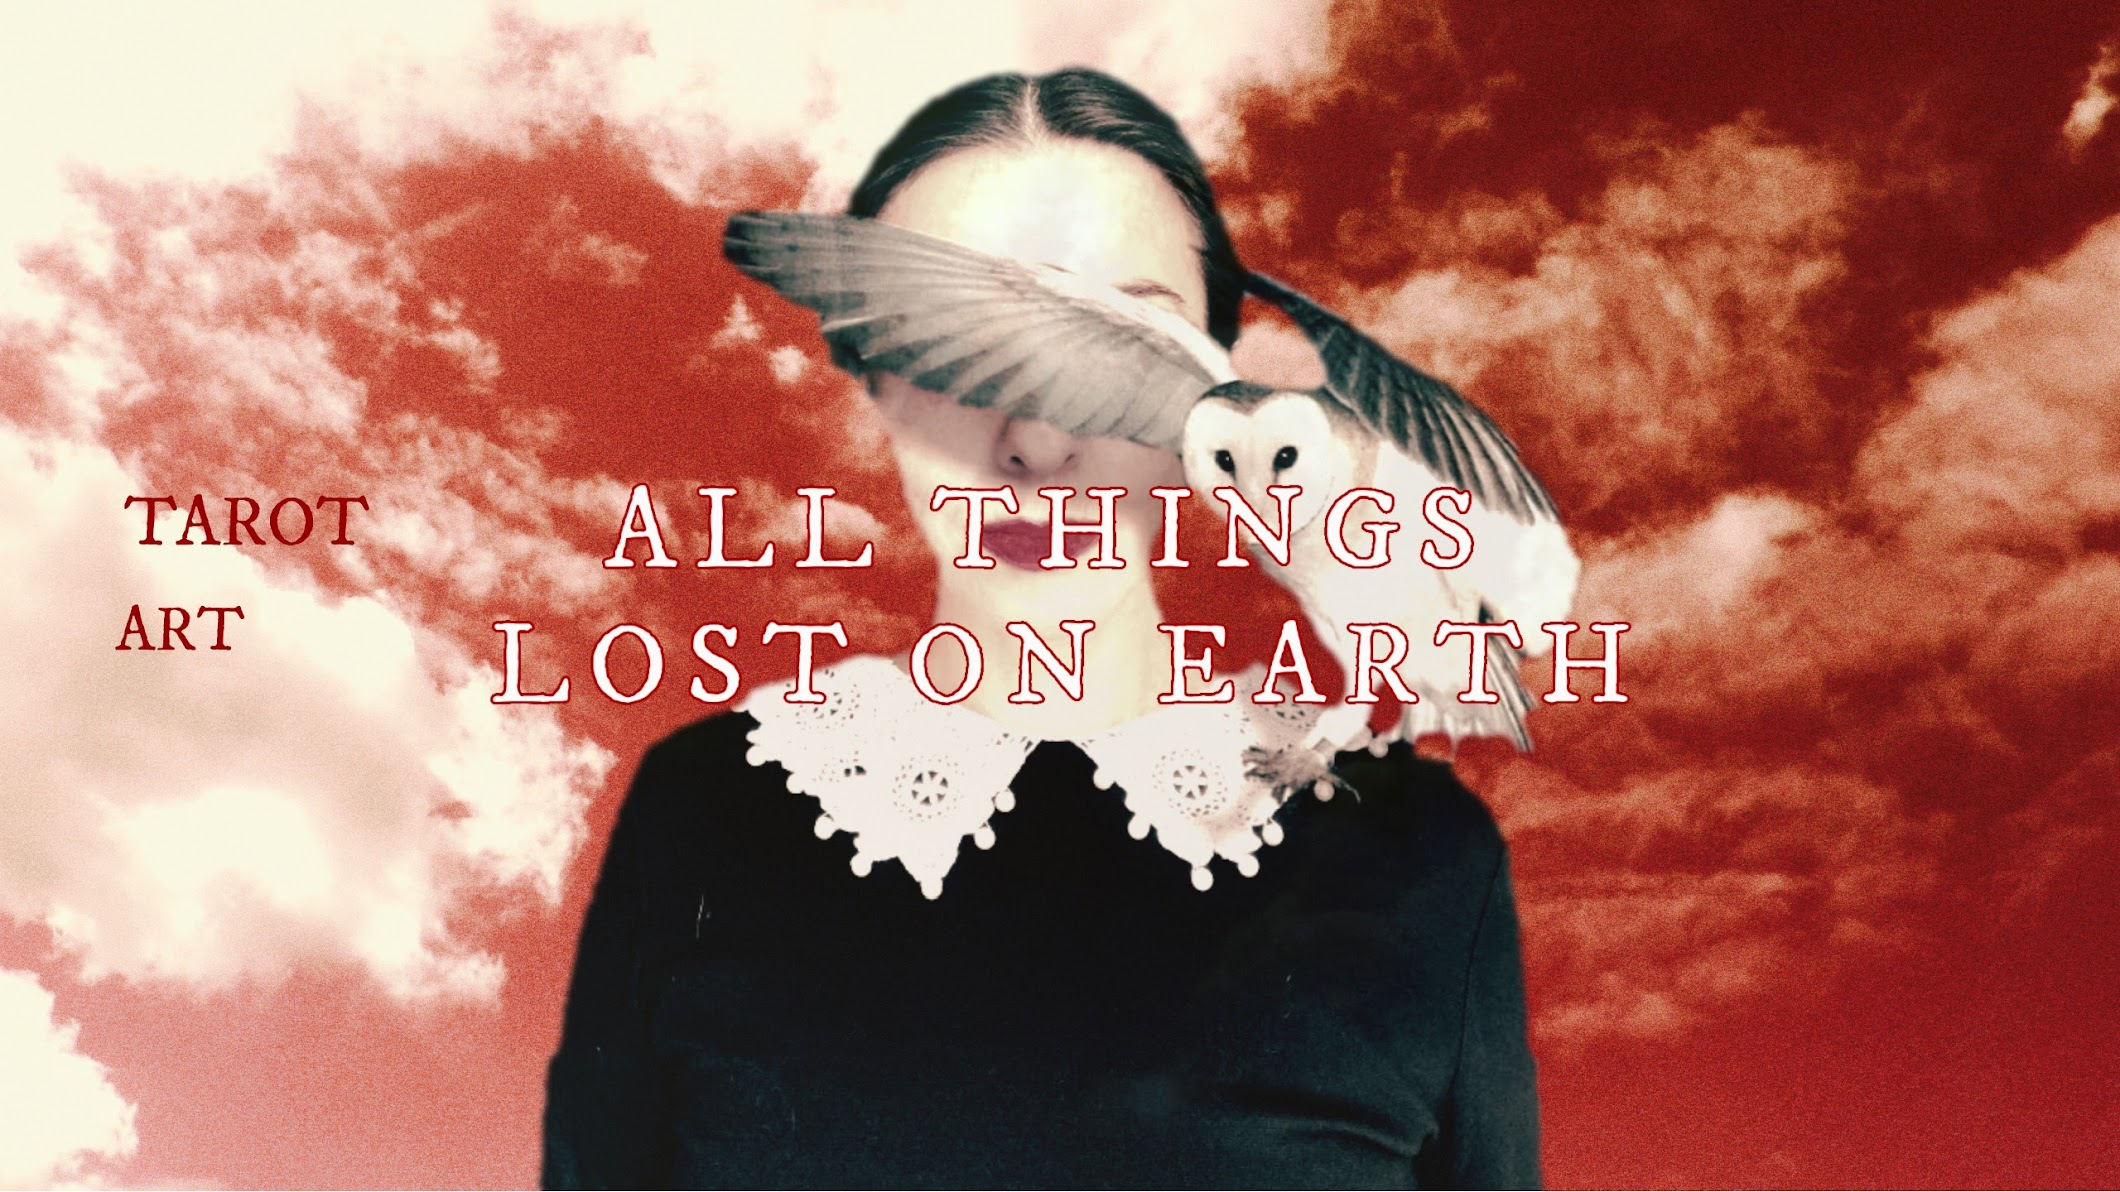 All Things Lost on Earth